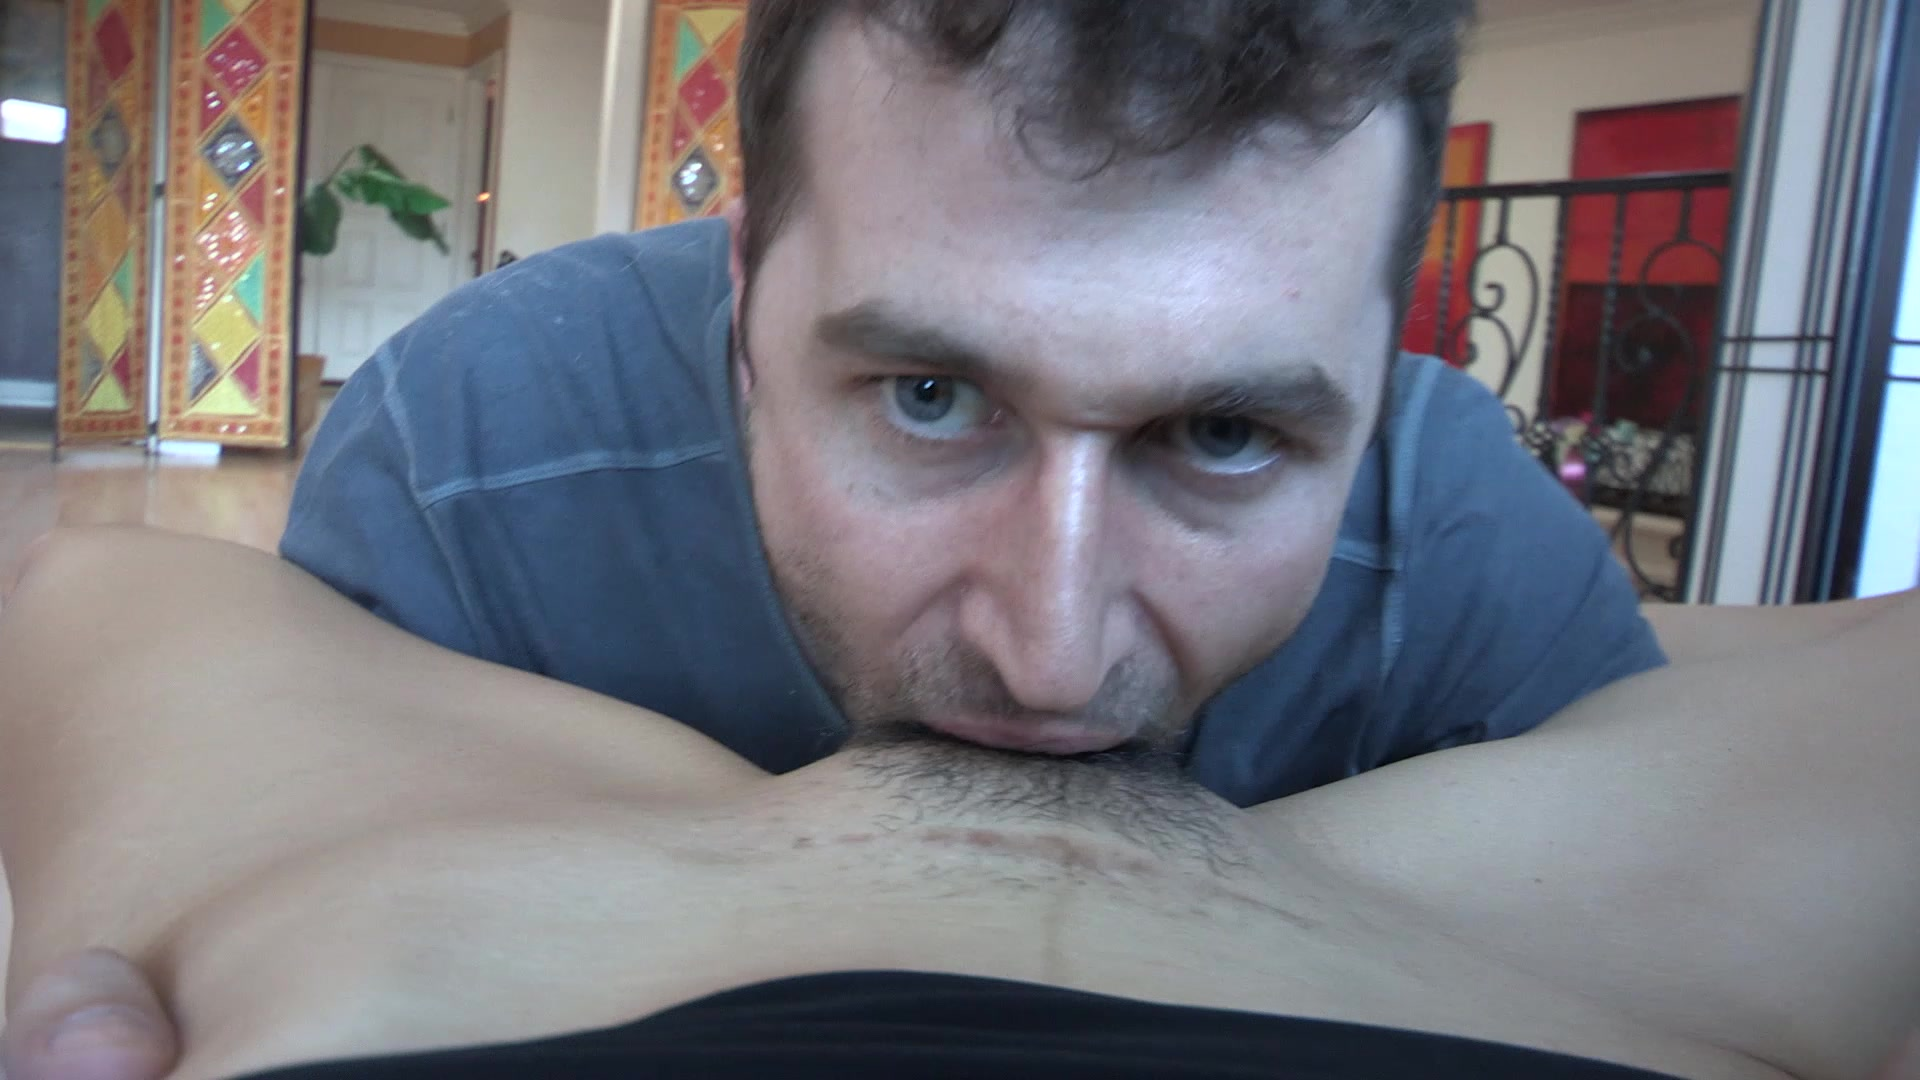 james deen's sex tapes: porn stars (2014) videos on demand | adult